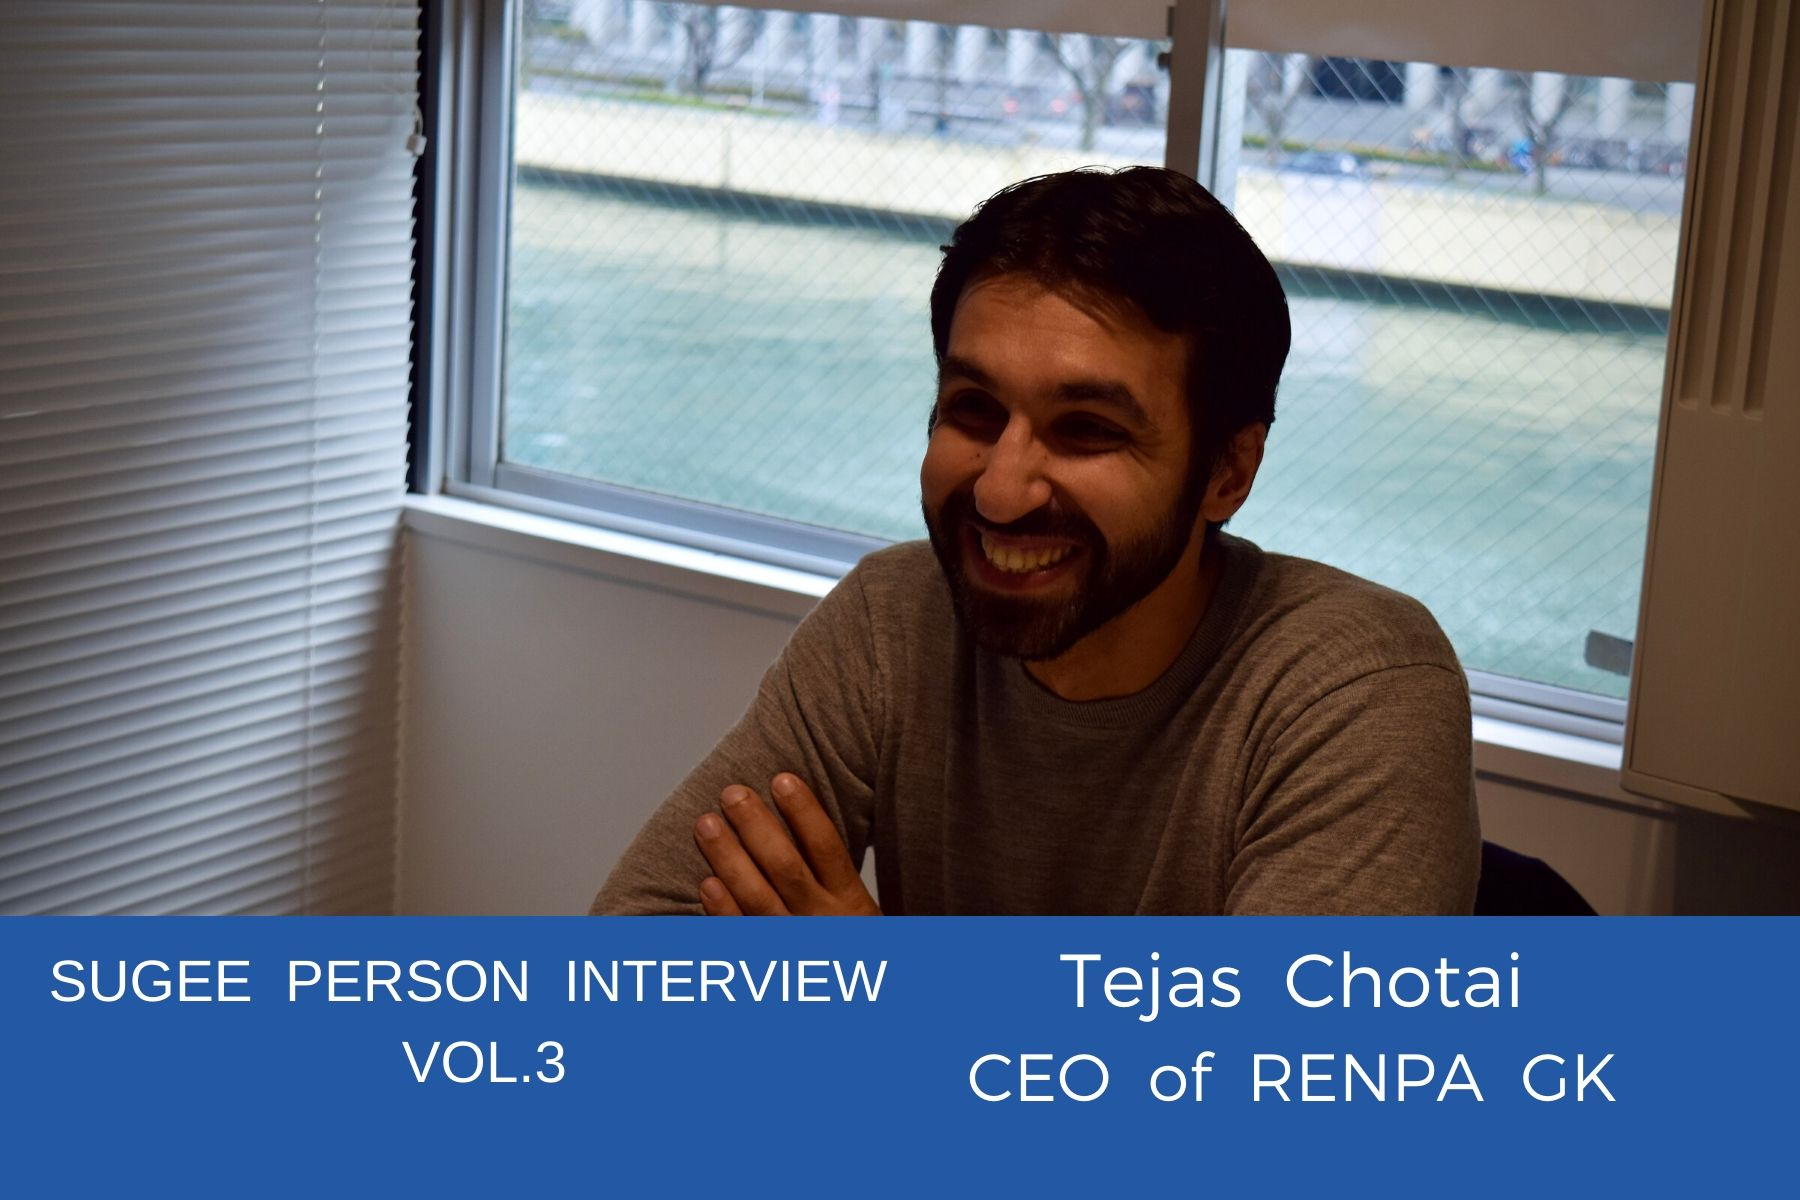 SUGEE person interview Vol.3 – Tejas Chotai, CEO of RENPA GK